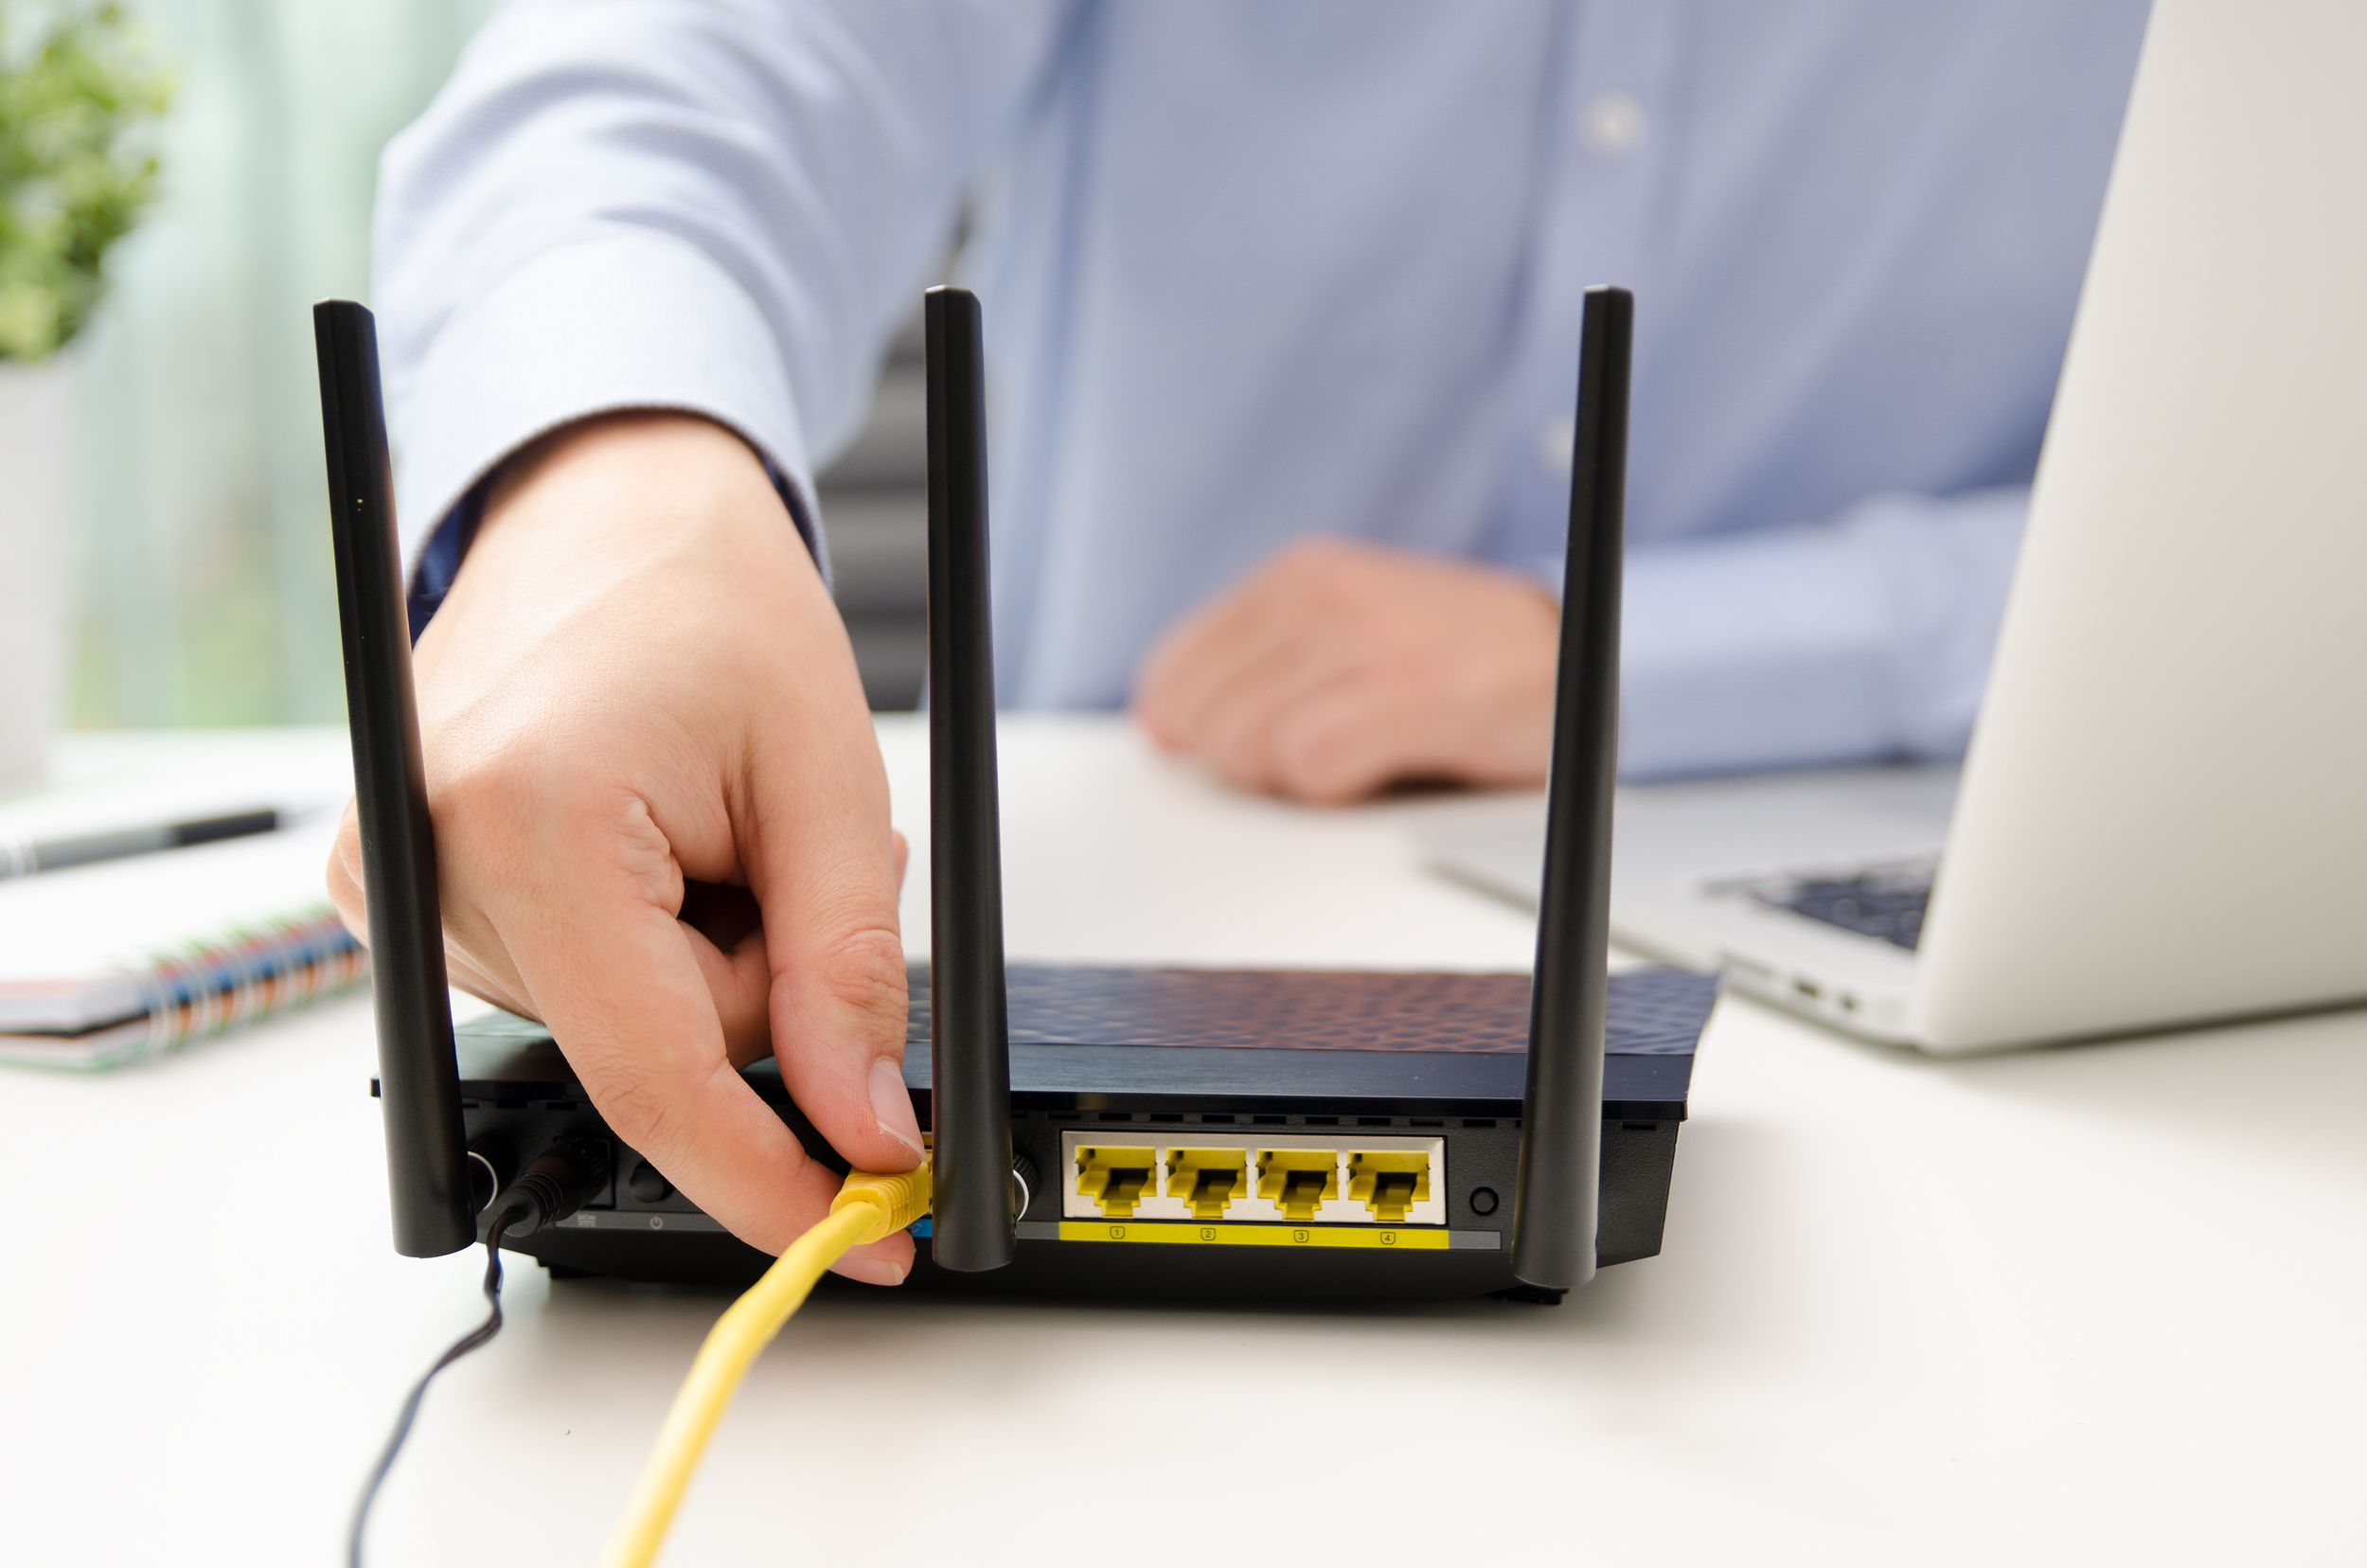 FBI warns about Russia-linked malware threat to home routers